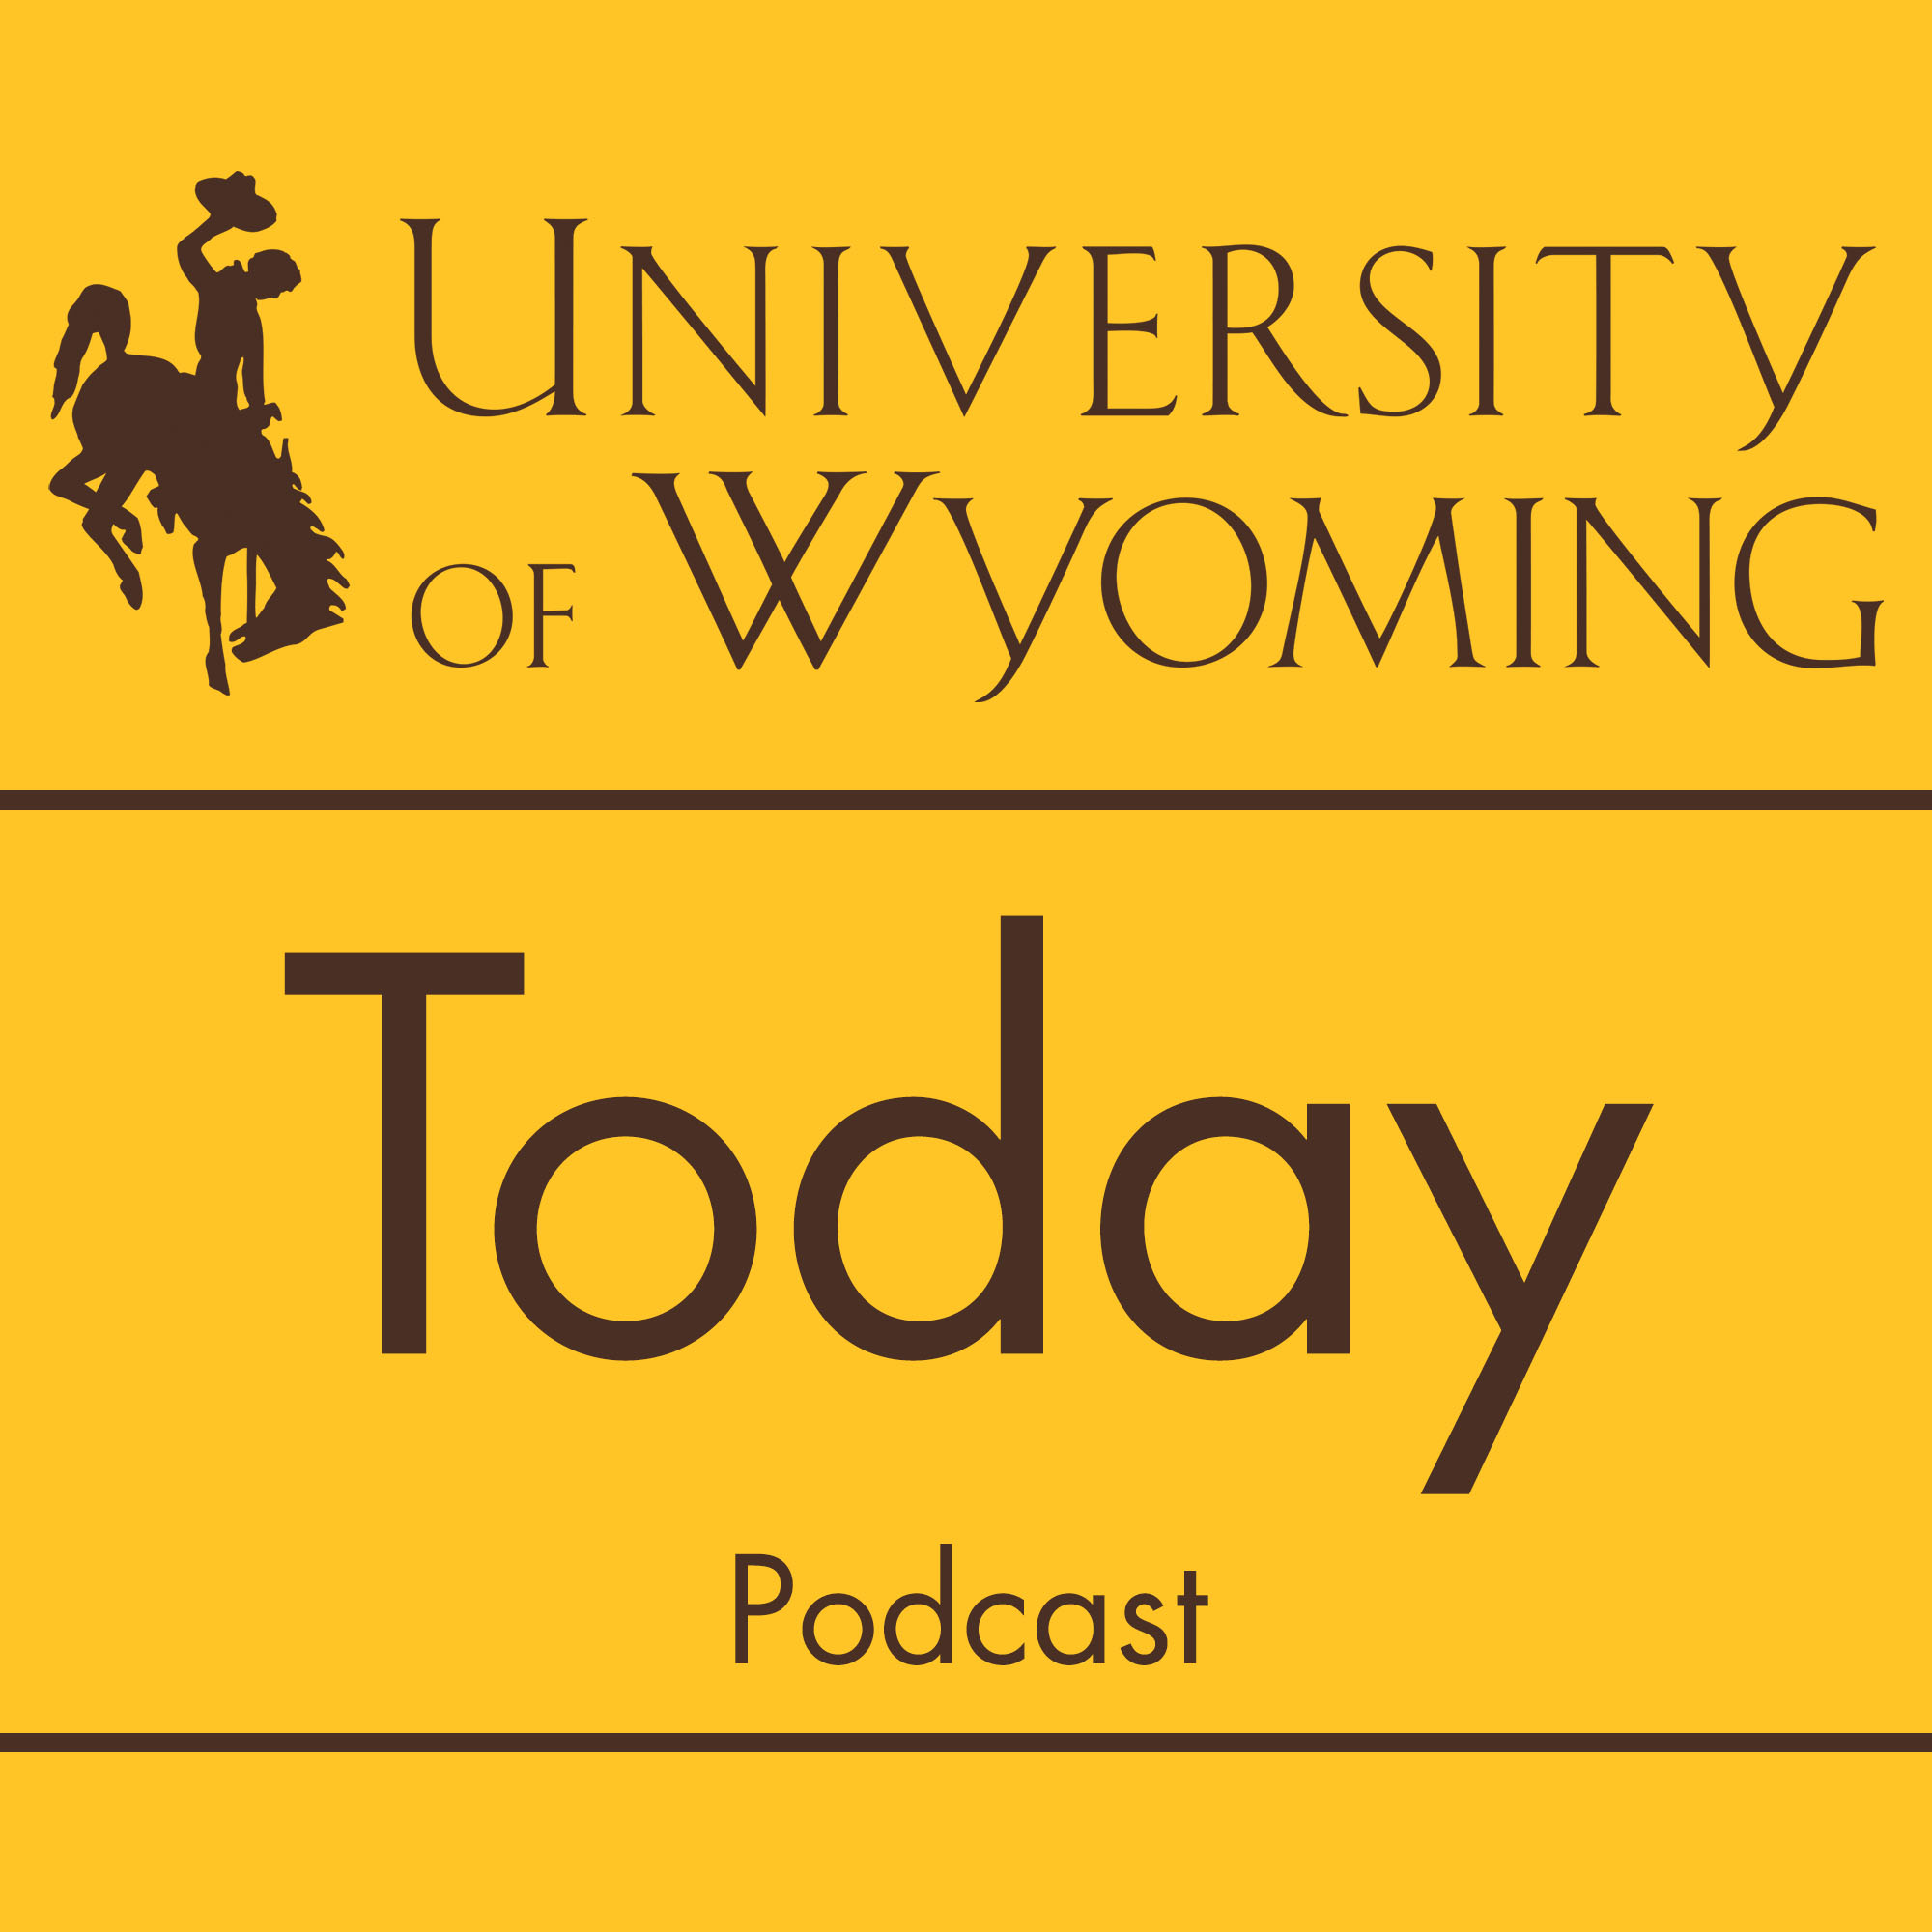 University of Wyoming Today